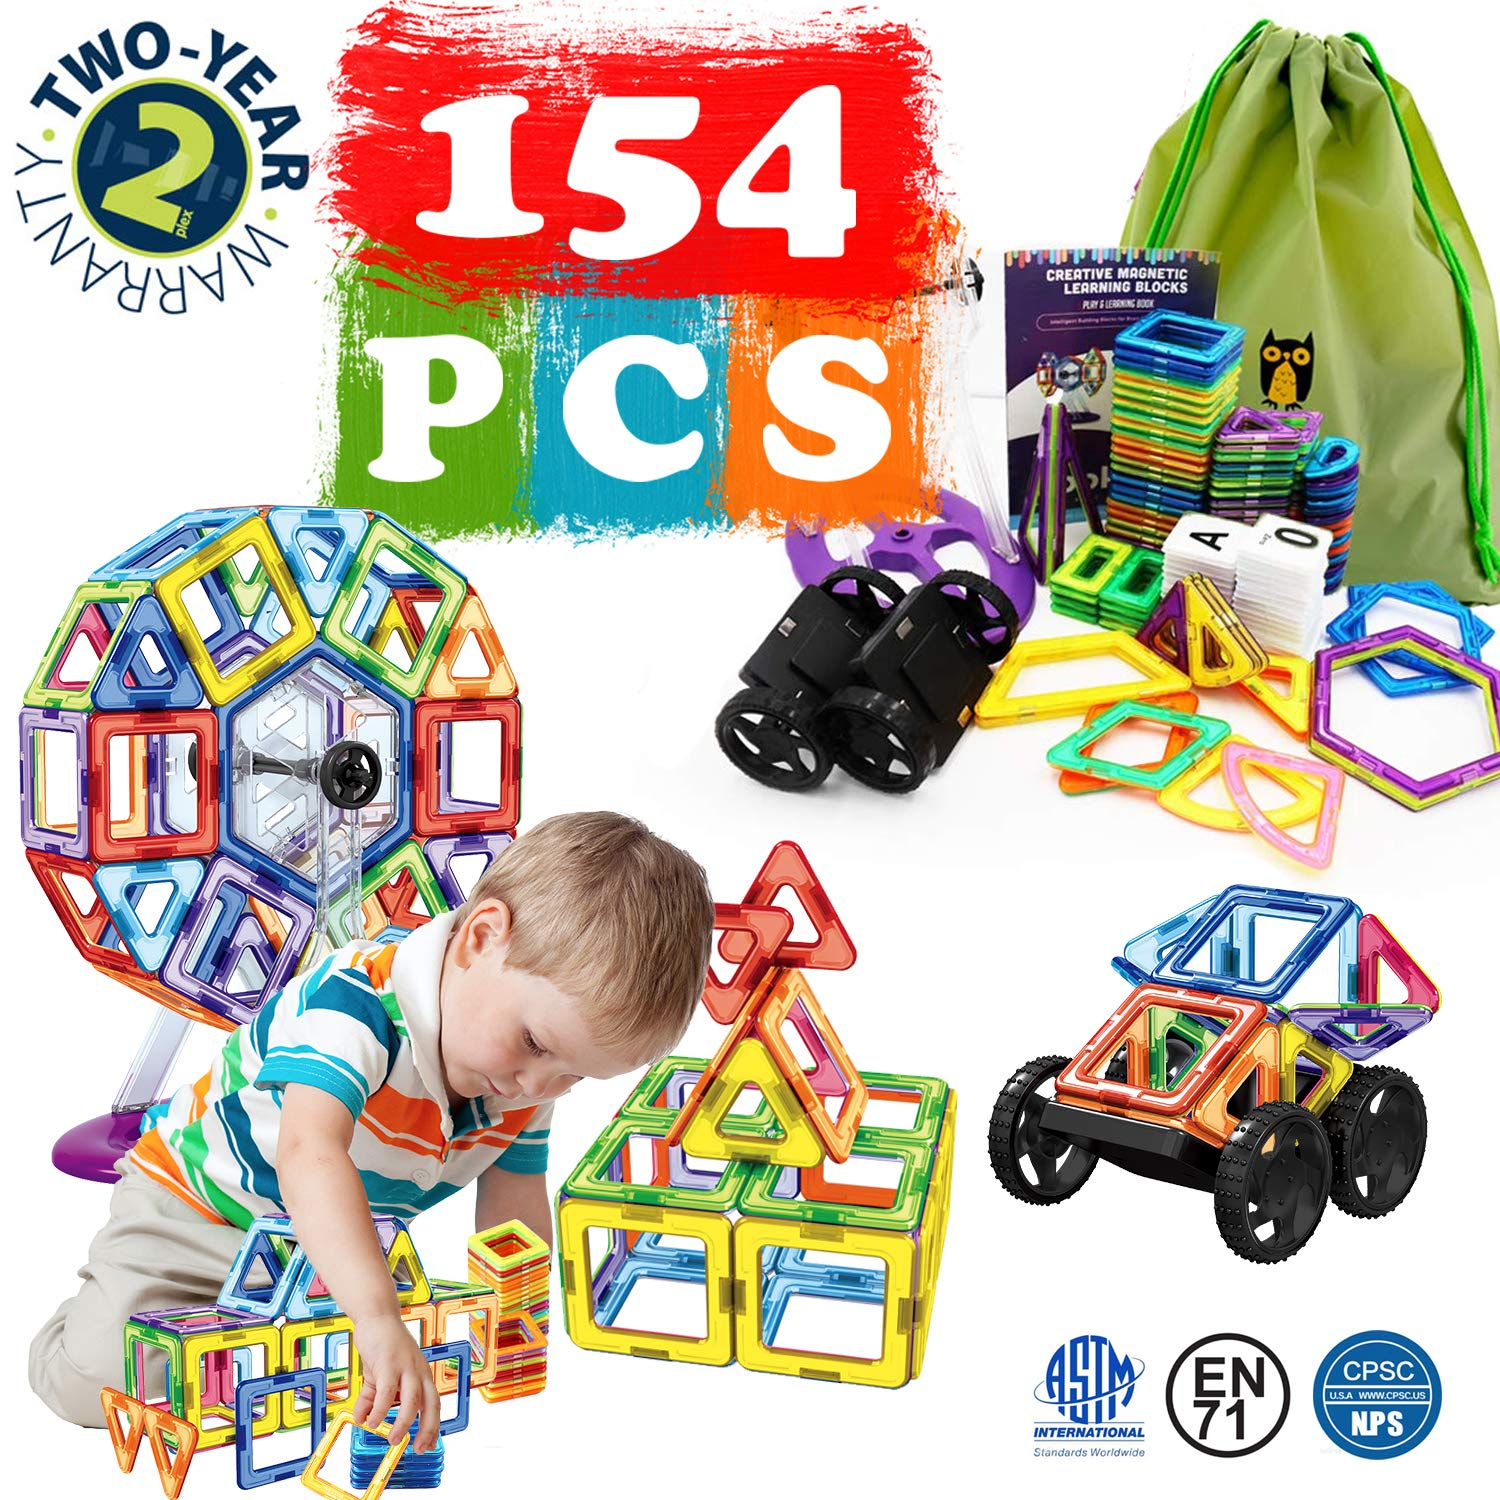 154 Pcs Magnetic Tiles Building Blocks Set for Kids Magnetic Tiles STEM Preschool Educational Construction Kit for Kids Toddlers Children Birthday Xmas Gift for 2,3,4,5,6,7 Year old Boys Girls by Bi-Smart